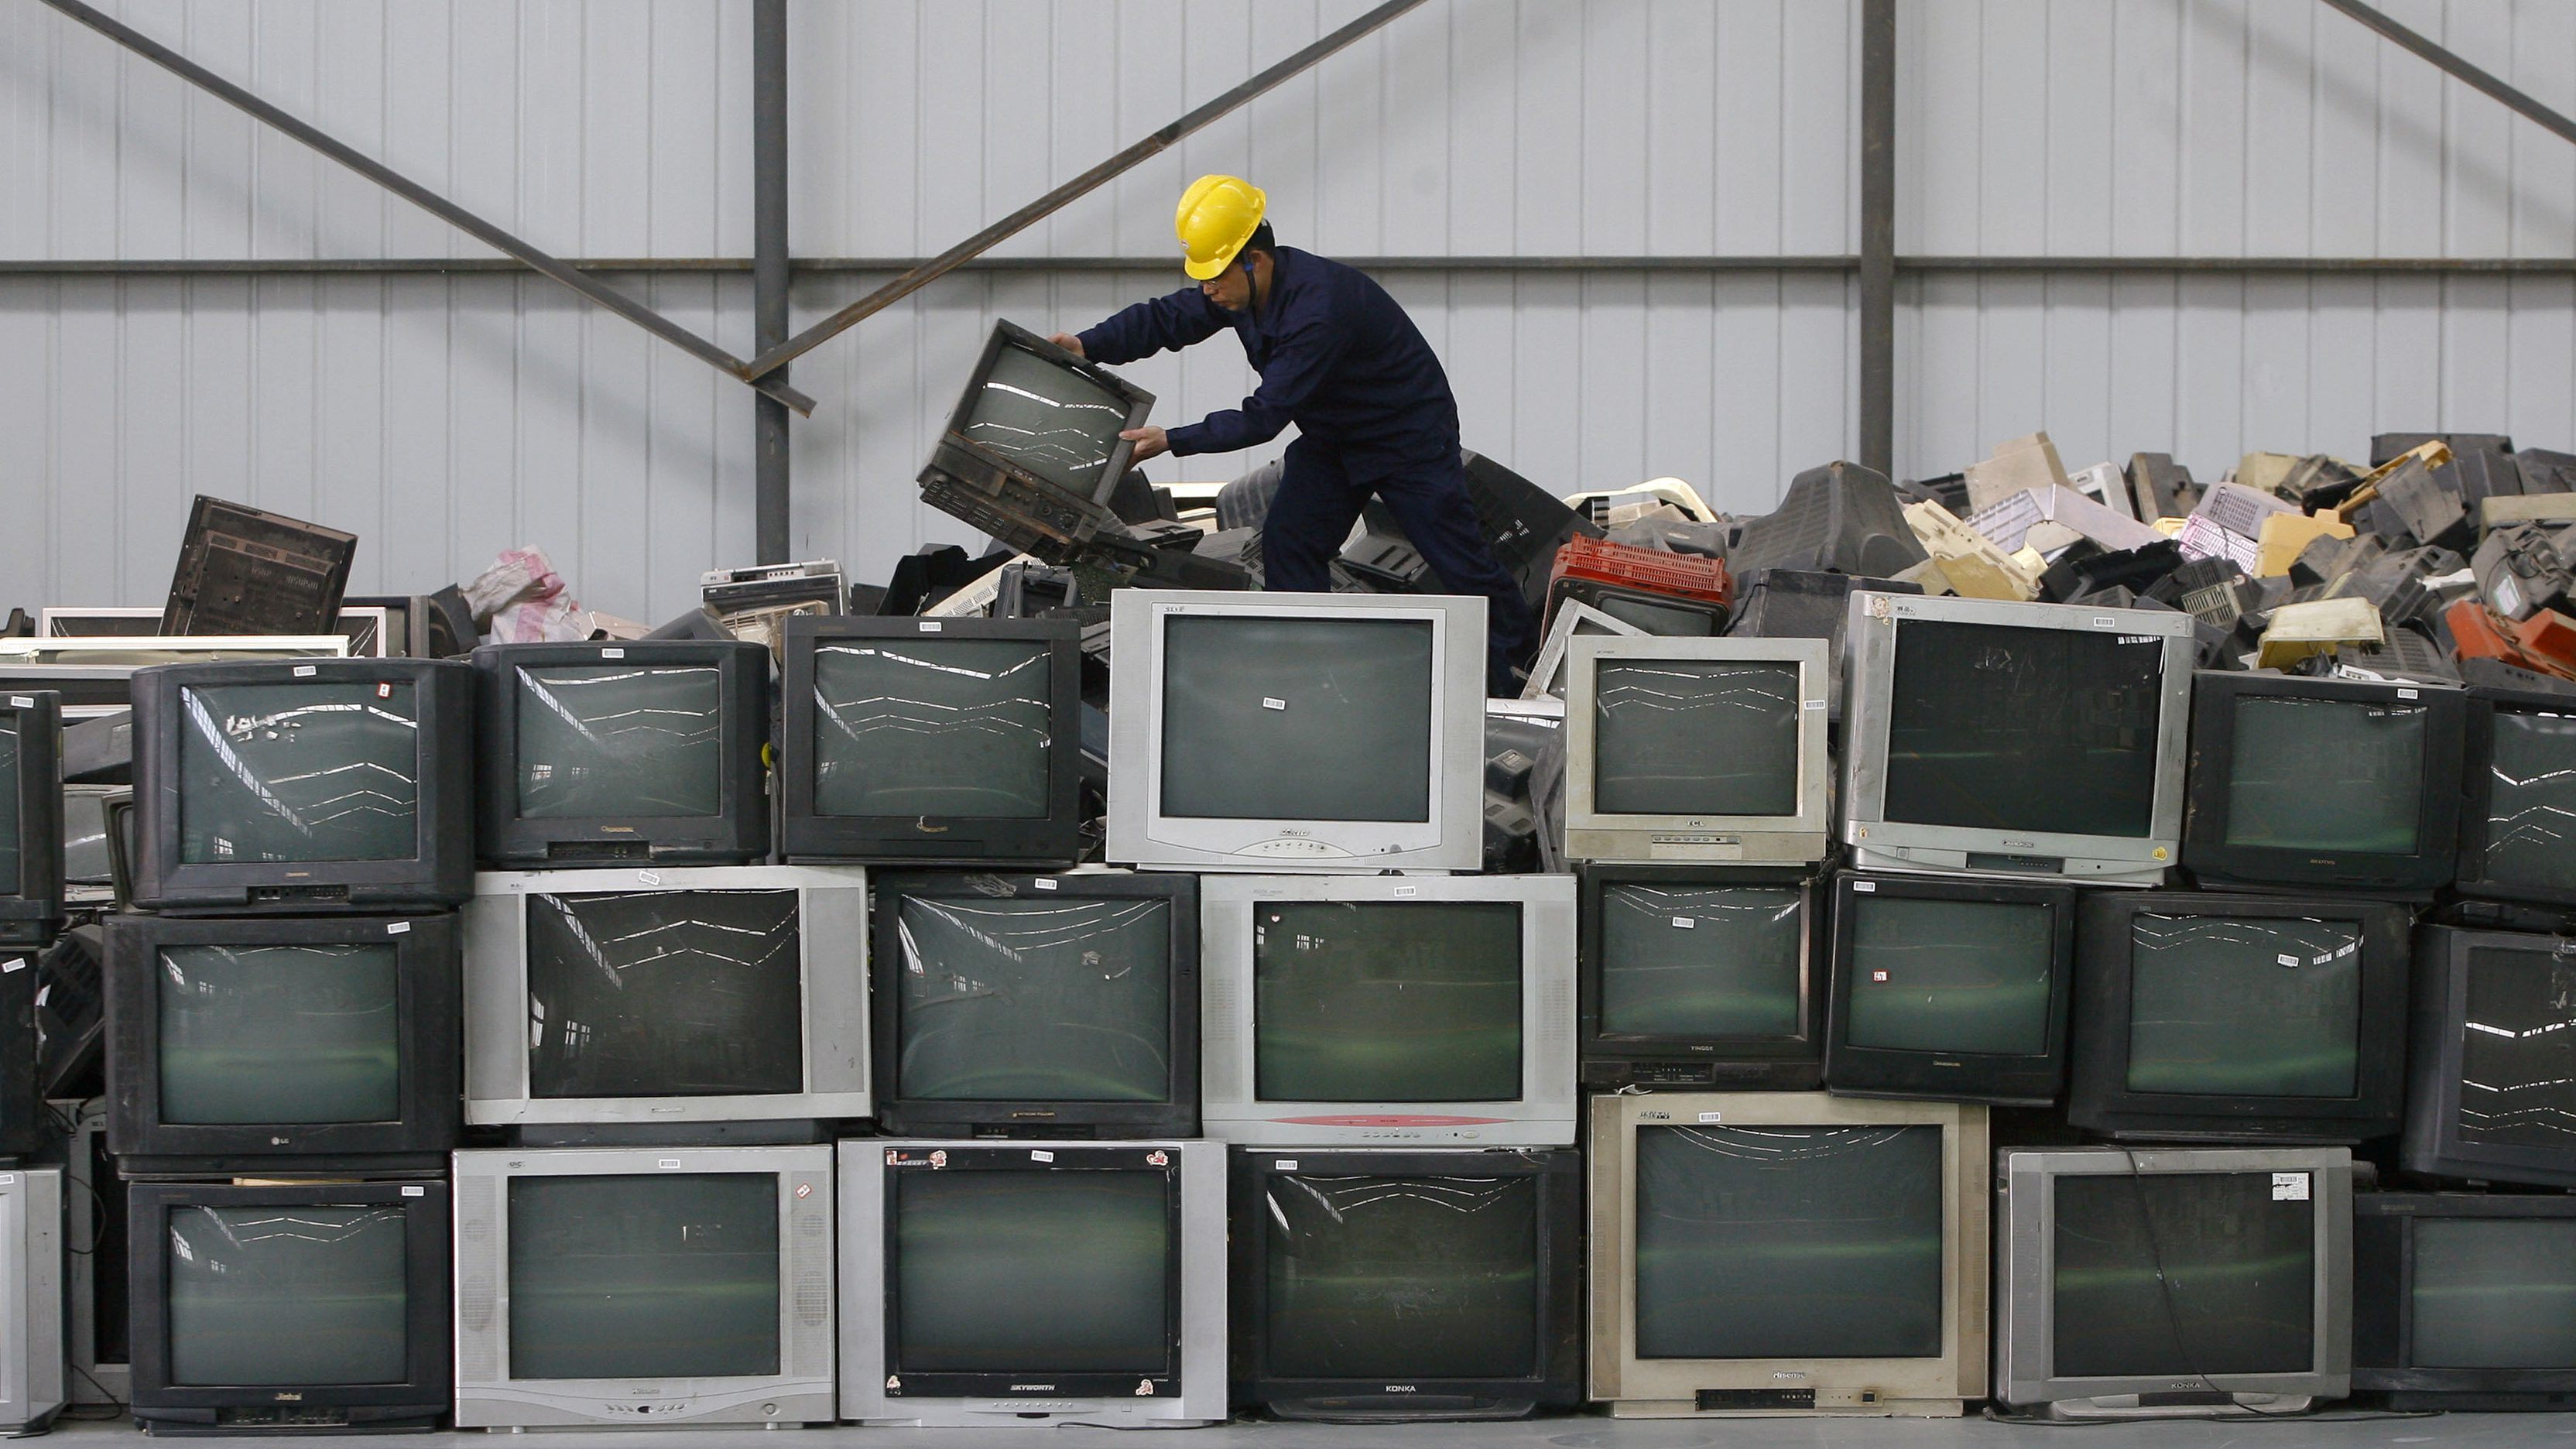 An employee arranges discarded televisions at a newly opened electronic waste recycling factory in Wuhan, Hubei province March 29, 2011. According to the U.S. Environmental Protection Agency (EPA), e-waste is the fastest growing commodity in the waste stream, with a growth rate five times that of other parts of the business such as industrial waste. The burgeoning middle classes in fast-growth China and India mean there are more computers and mobiles, adding to e-cycling growth.